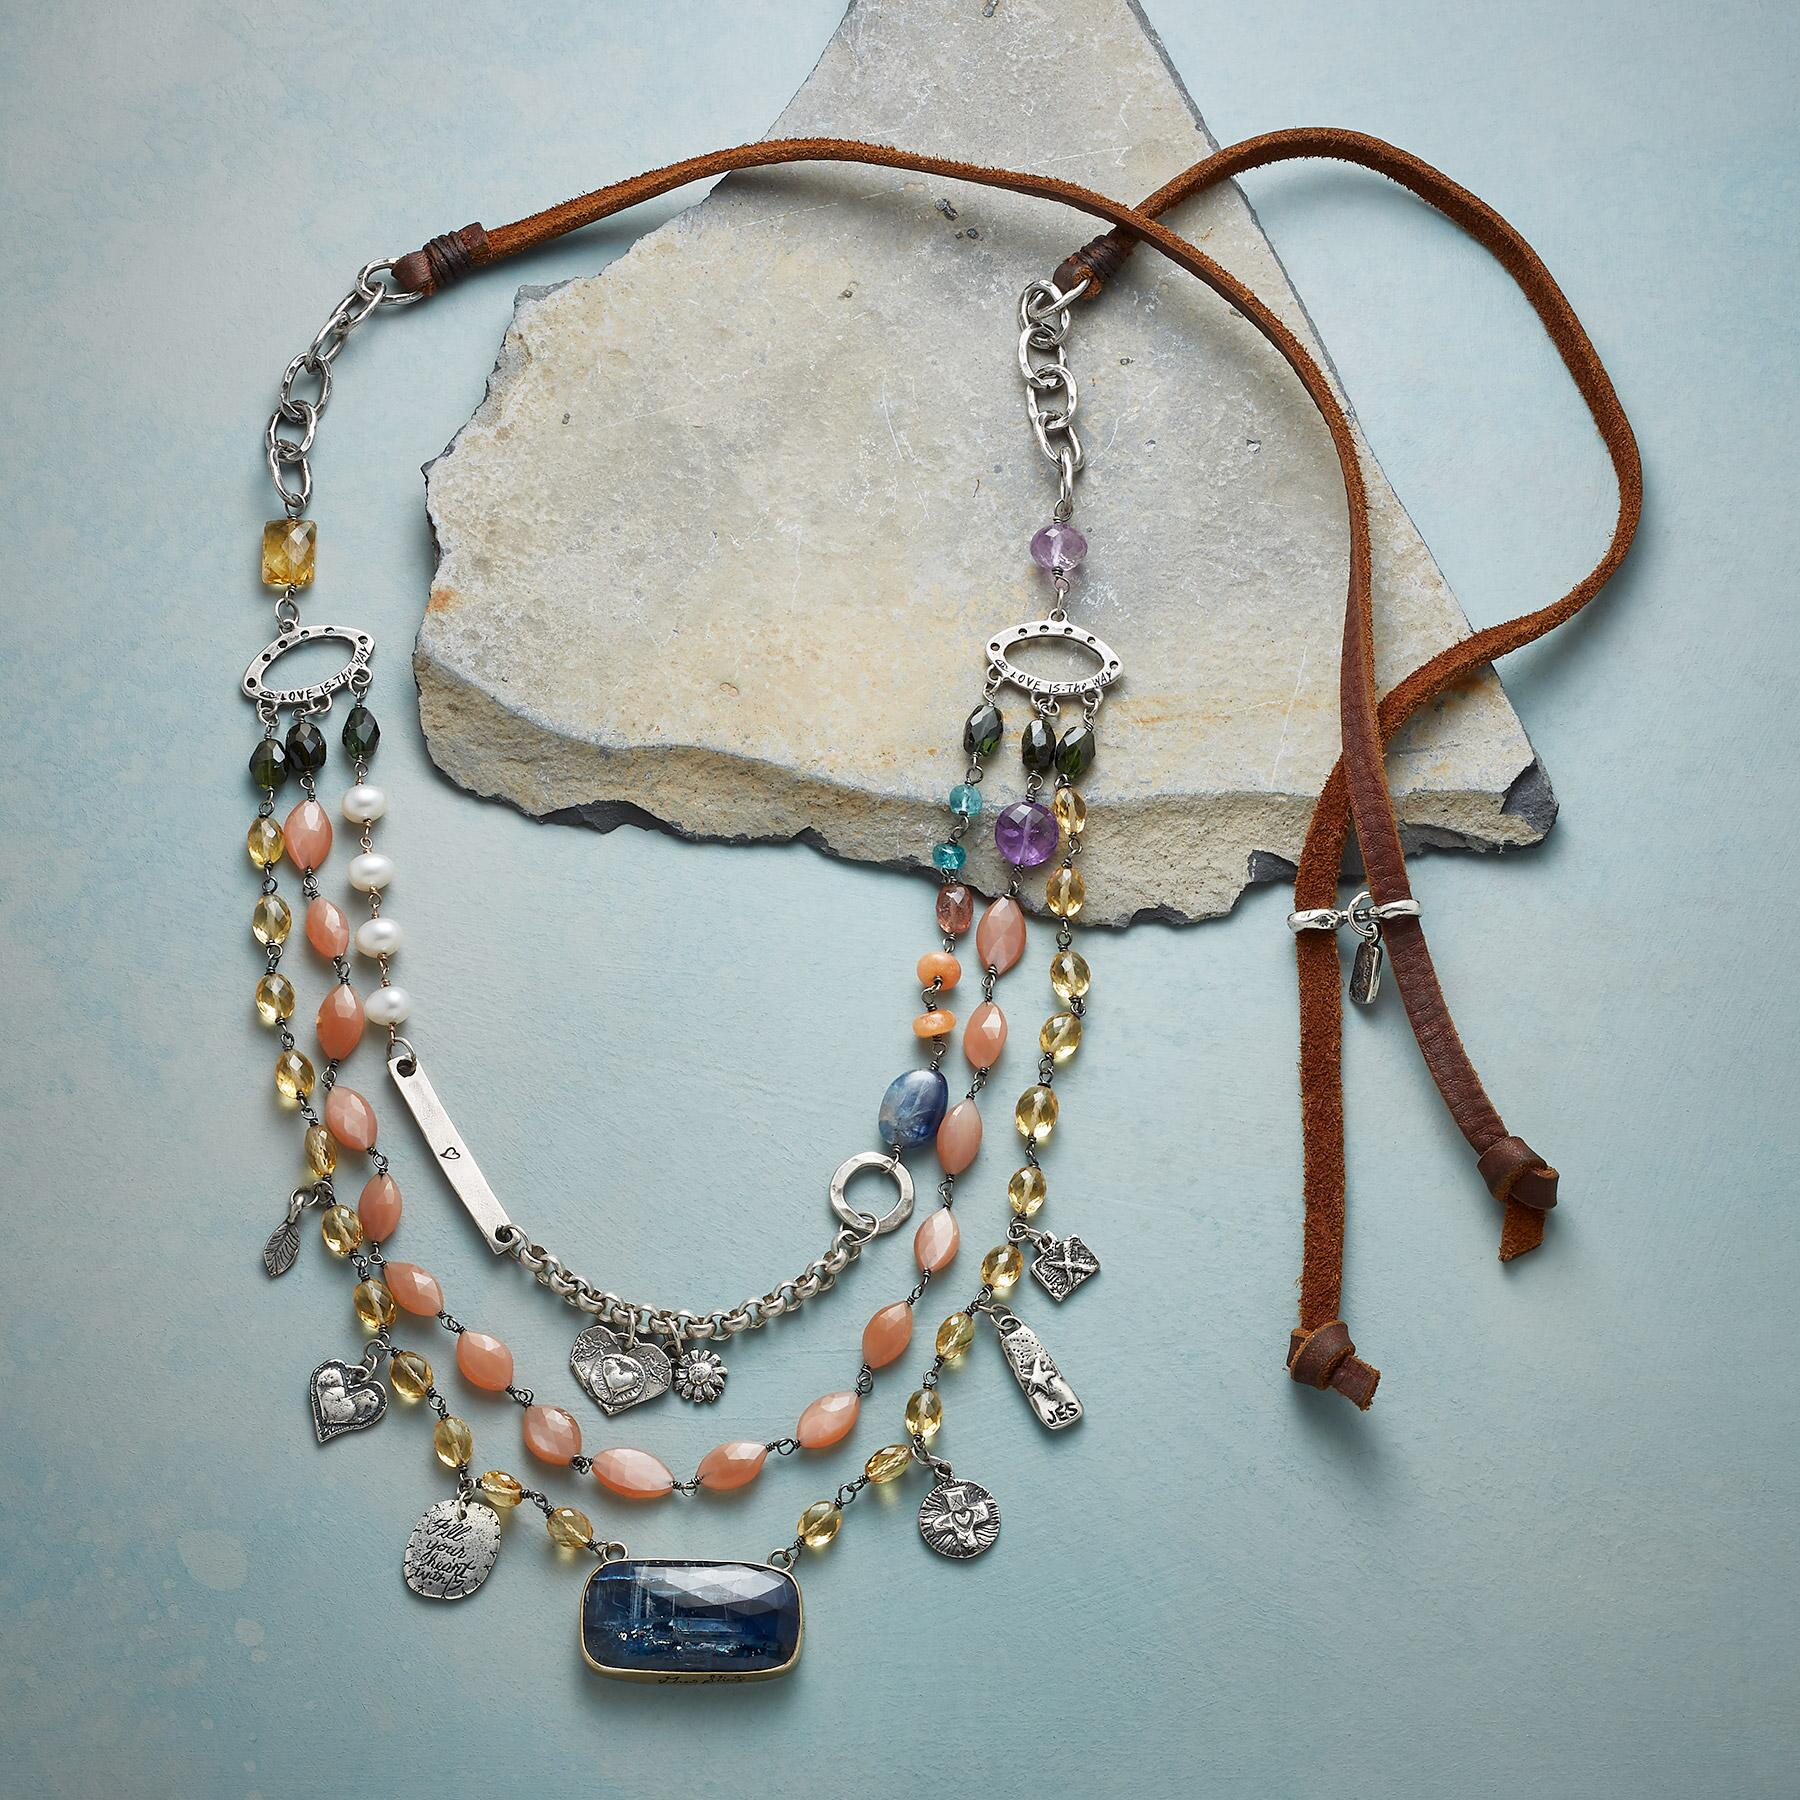 LIFE OF JOY NECKLACE: View 2